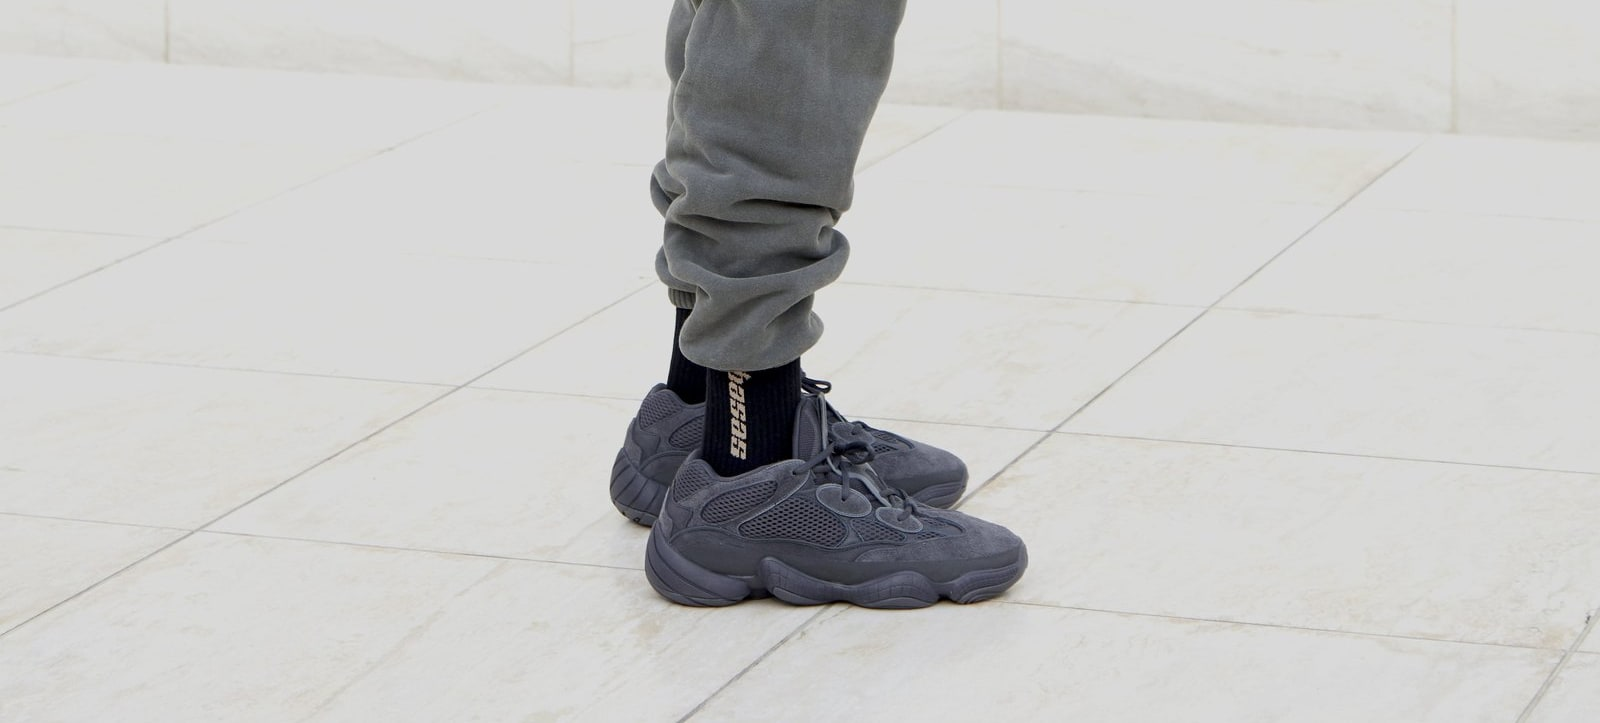 "giay theo thao dat nhat q3.2018 - Yeezy Boost 500 ""Utility Black"" - elle man"